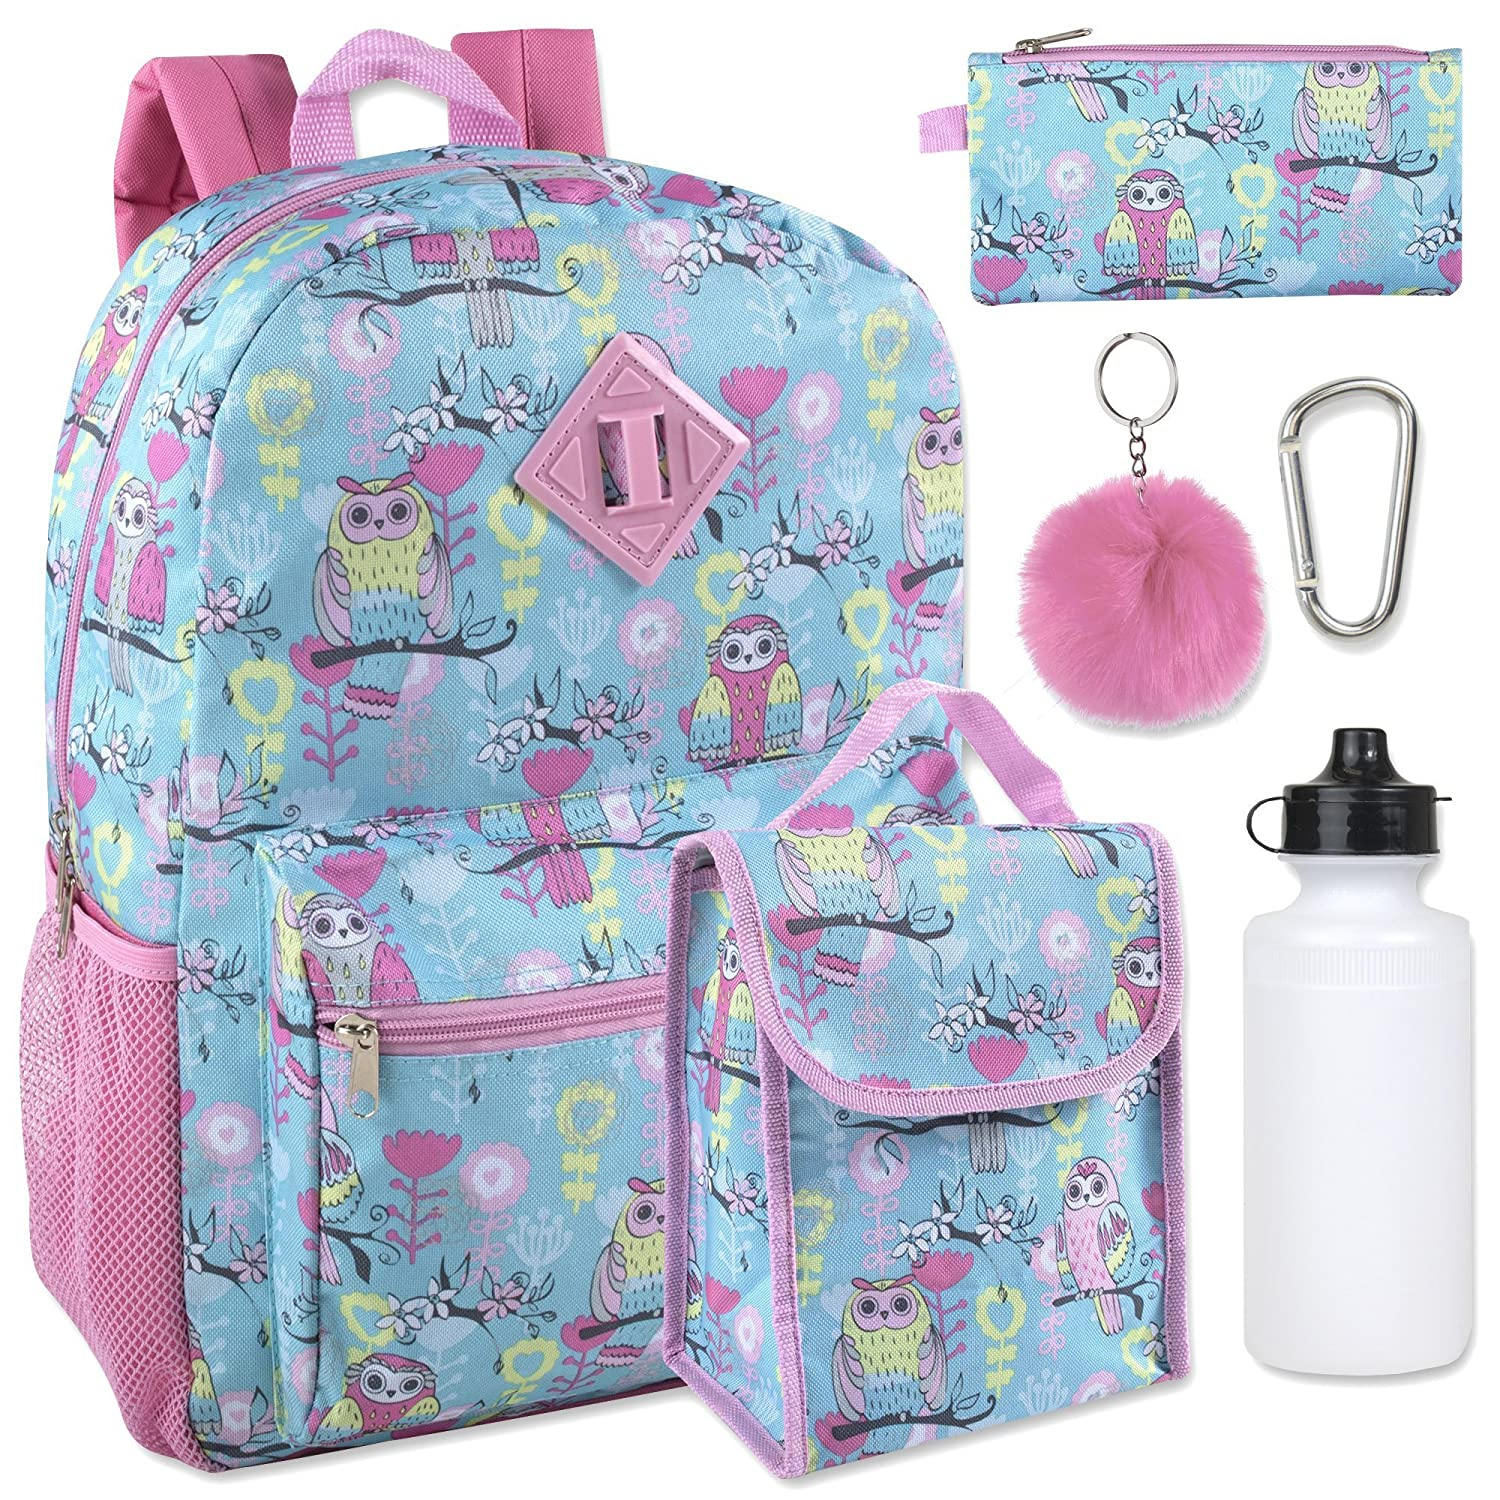 Girl's 6 in 1 Backpack Set With Lunch Bag, Pencil Case, Bottle, Keychain, Clip Clip (Emoji)